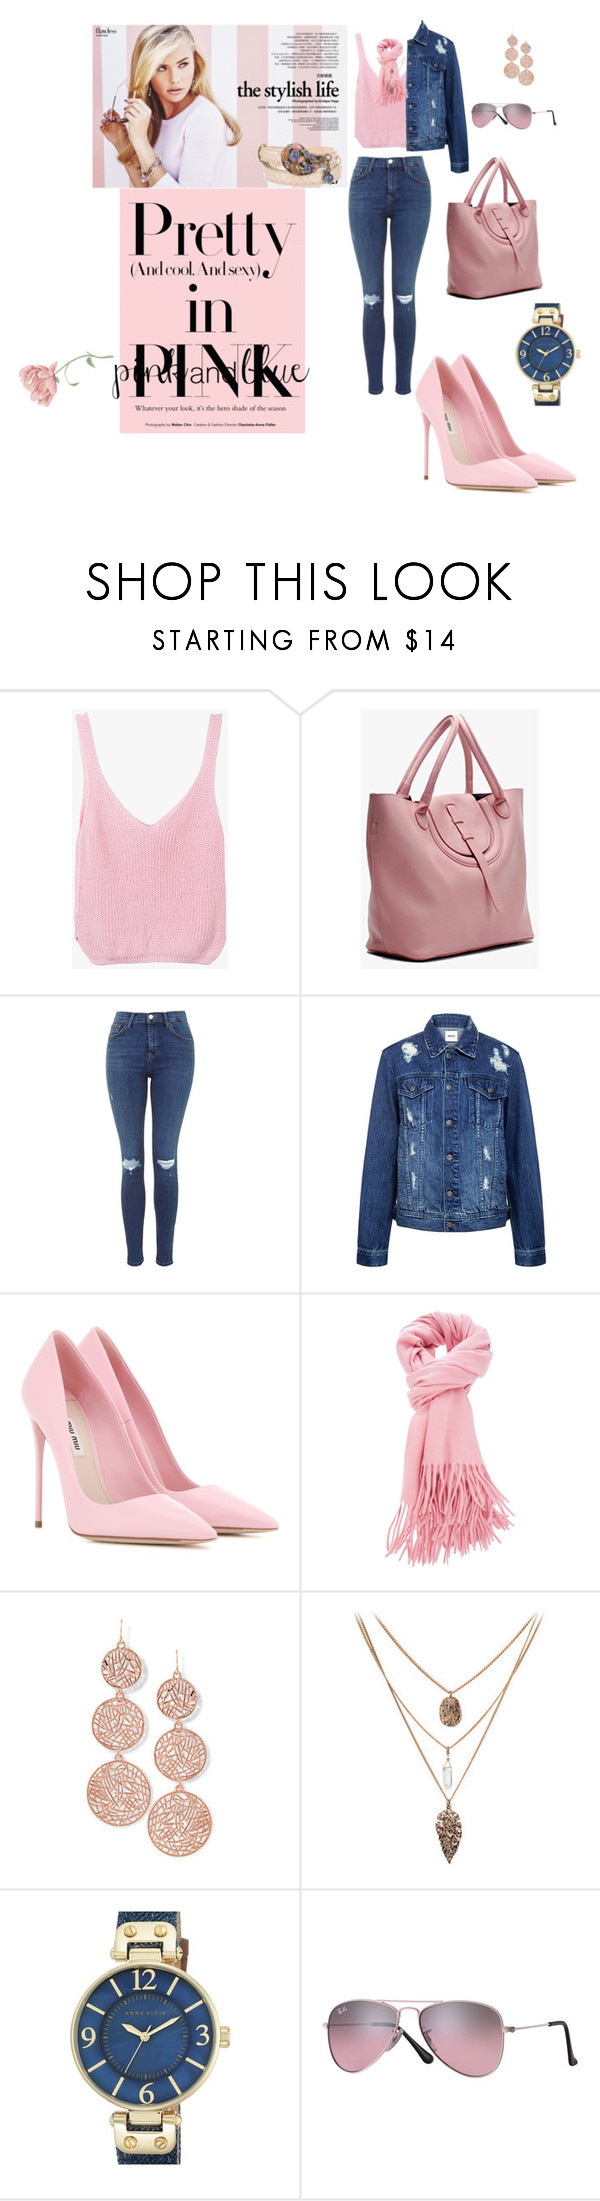 """""""pretty in pink and blue"""" by agnesmakoni ❤ liked on Polyvore featuring Edit, Miu Miu, Anne Klein, Ray-Ban, Etro and yoins"""